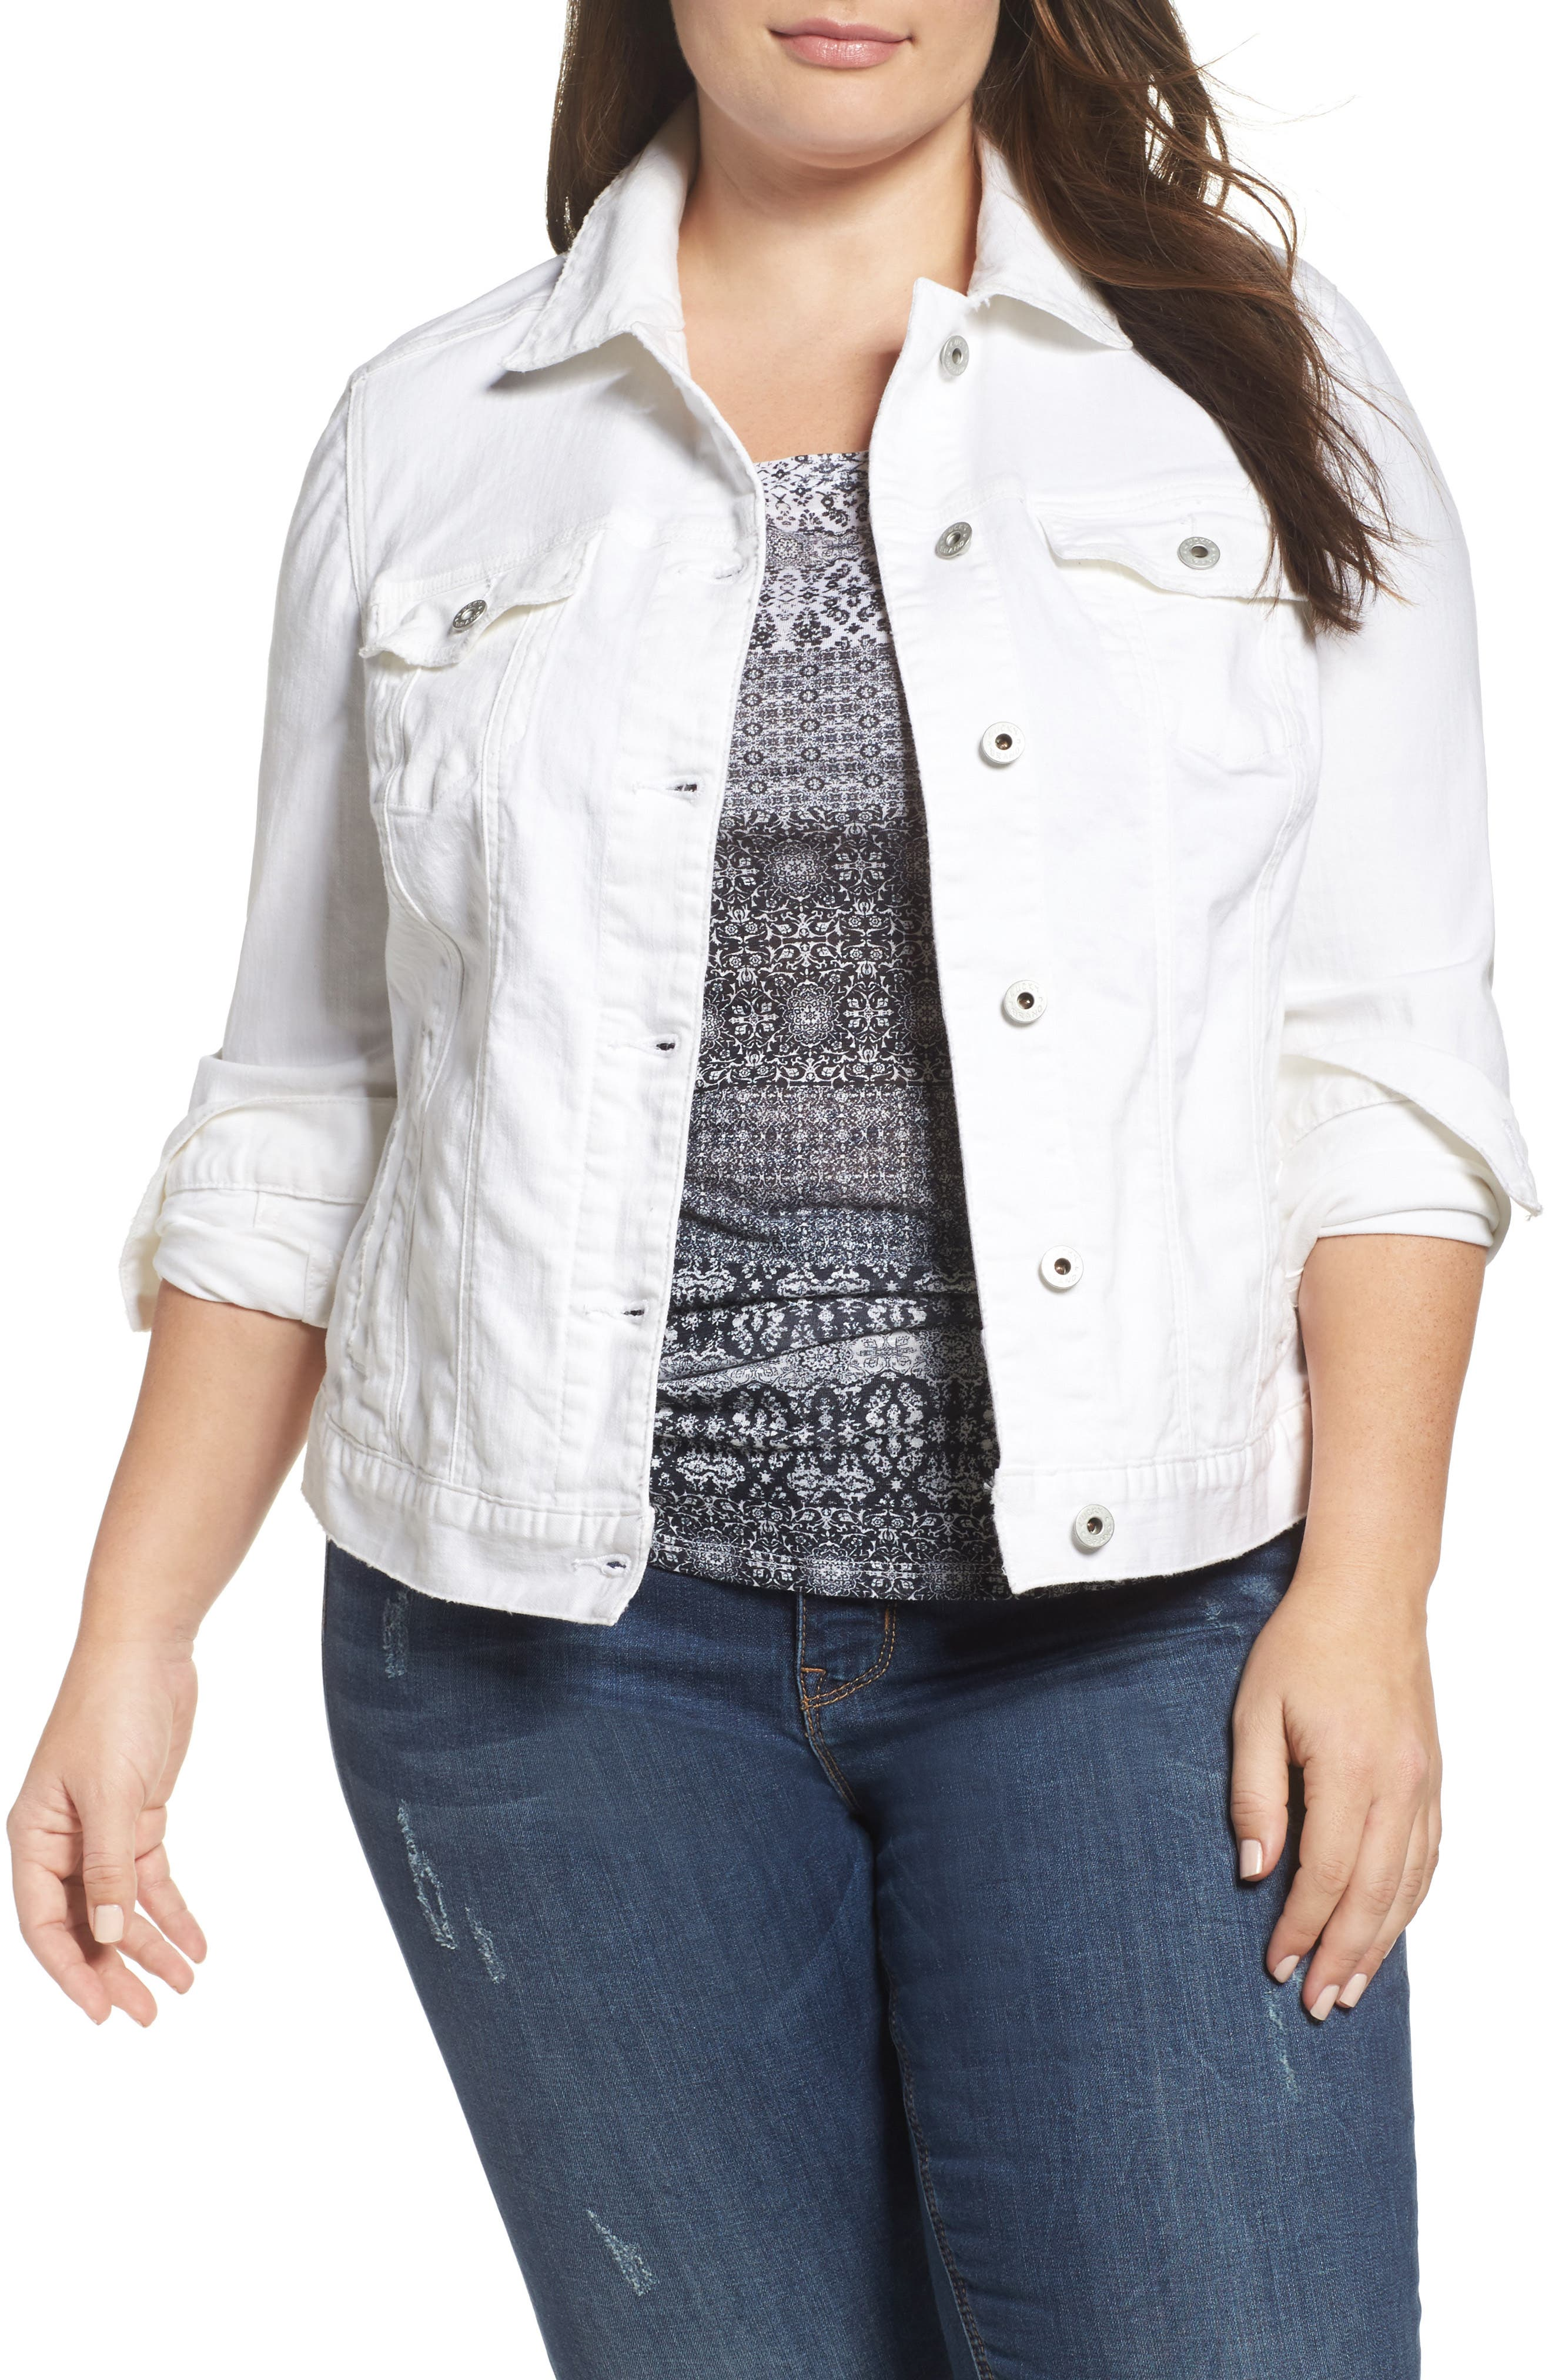 Alternate Image 1 Selected - Lucky Brand Floral Trucker Jacket (Plus Size)